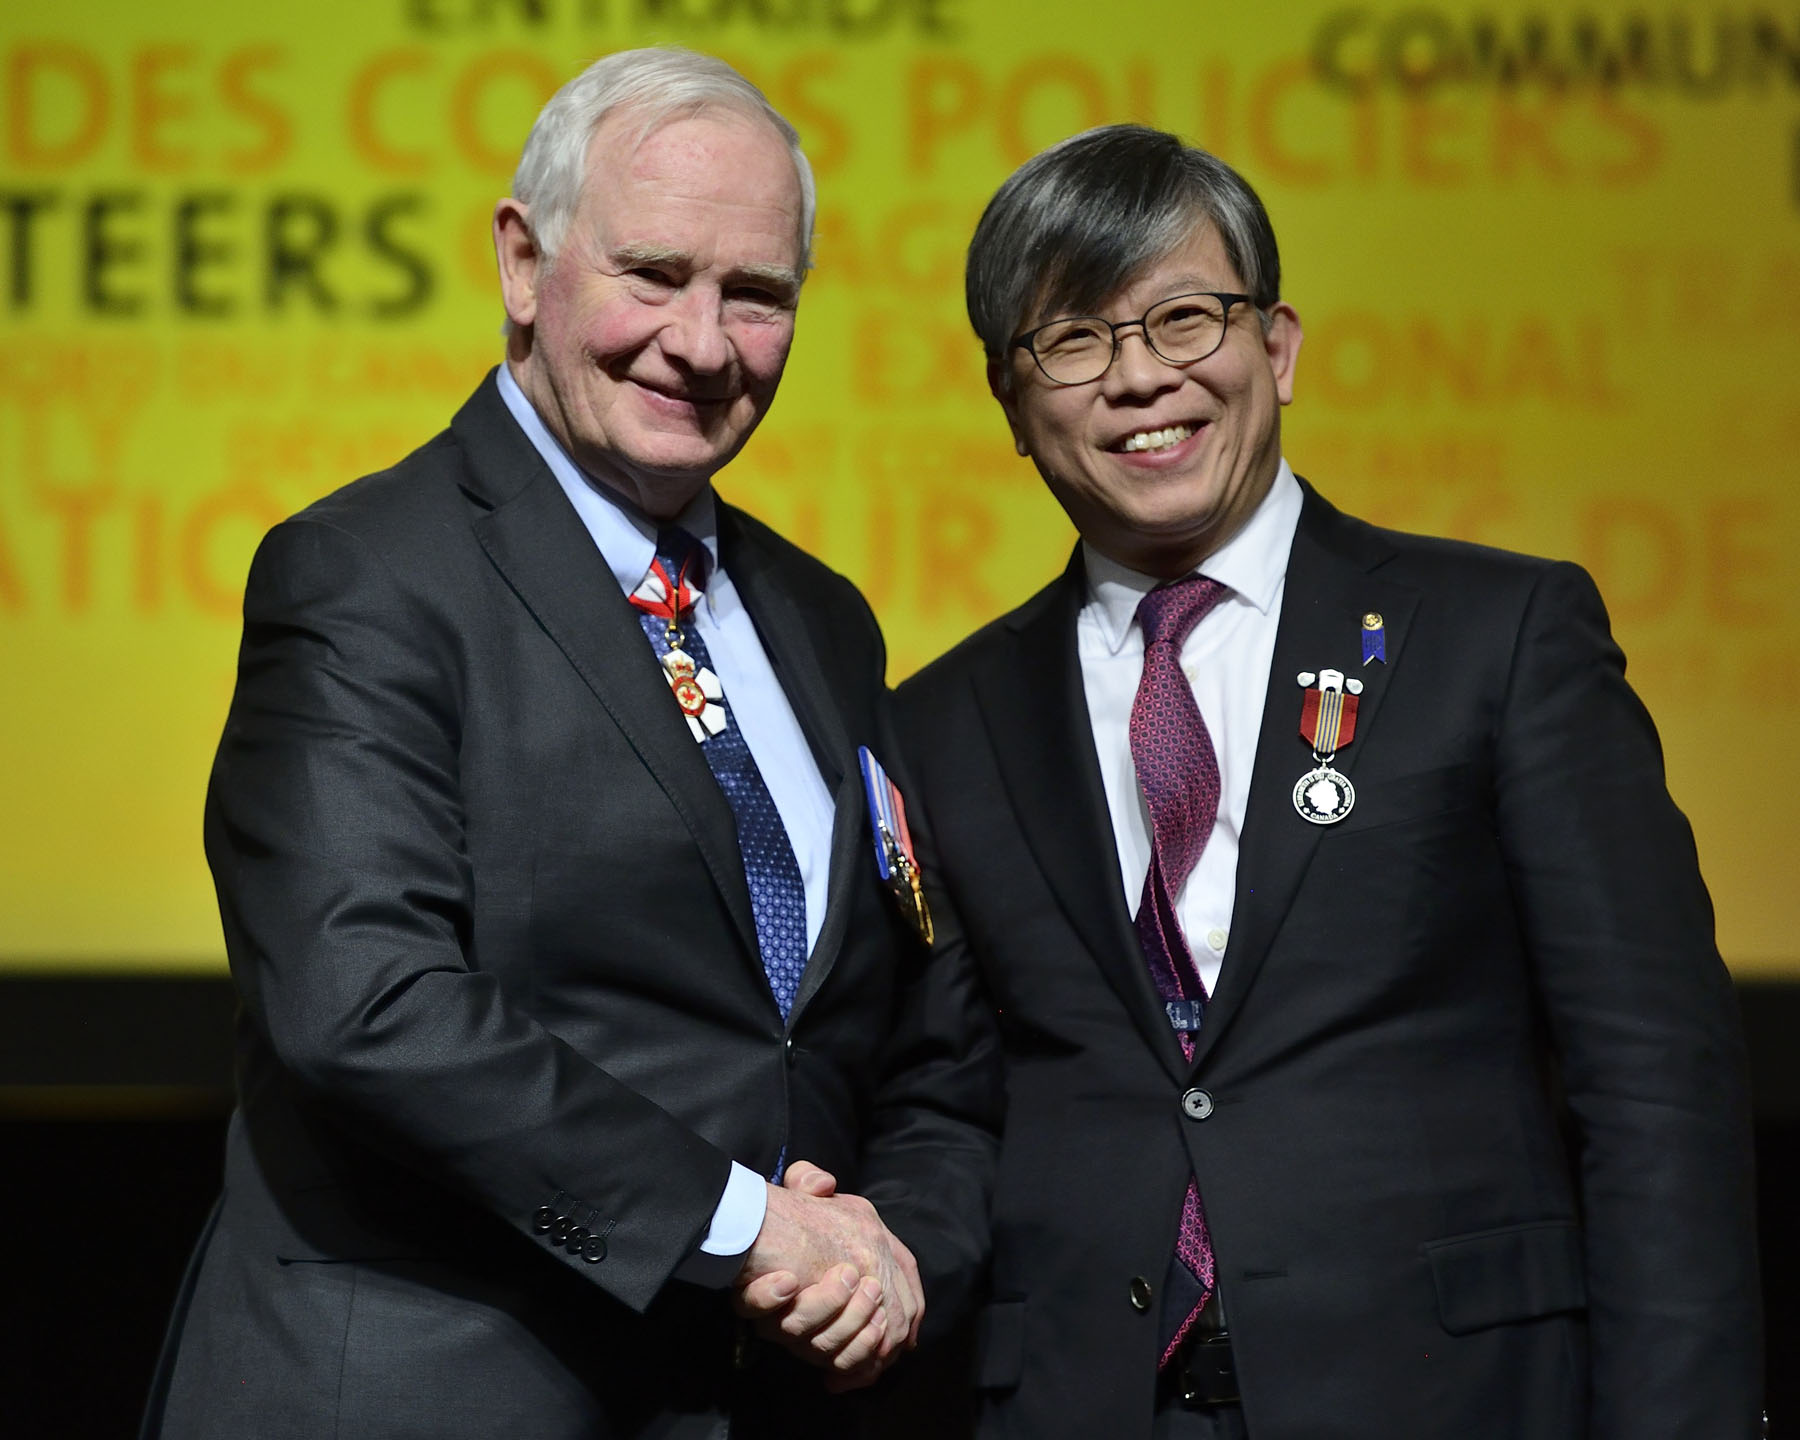 His Excellency presented the Sovereign's Medal for Volunteer to Benny Kwok Man Tam. As a volunteer with the 11th Toronto Scout Group since its founding in 1990, Mr. Tam has been assisting with the delivery of the youth program, coordinating fundraisers and developing training programs. From 1990 to 1994, he was also part of a network that helped new Hong Kong immigrants integrate into the Toronto community.